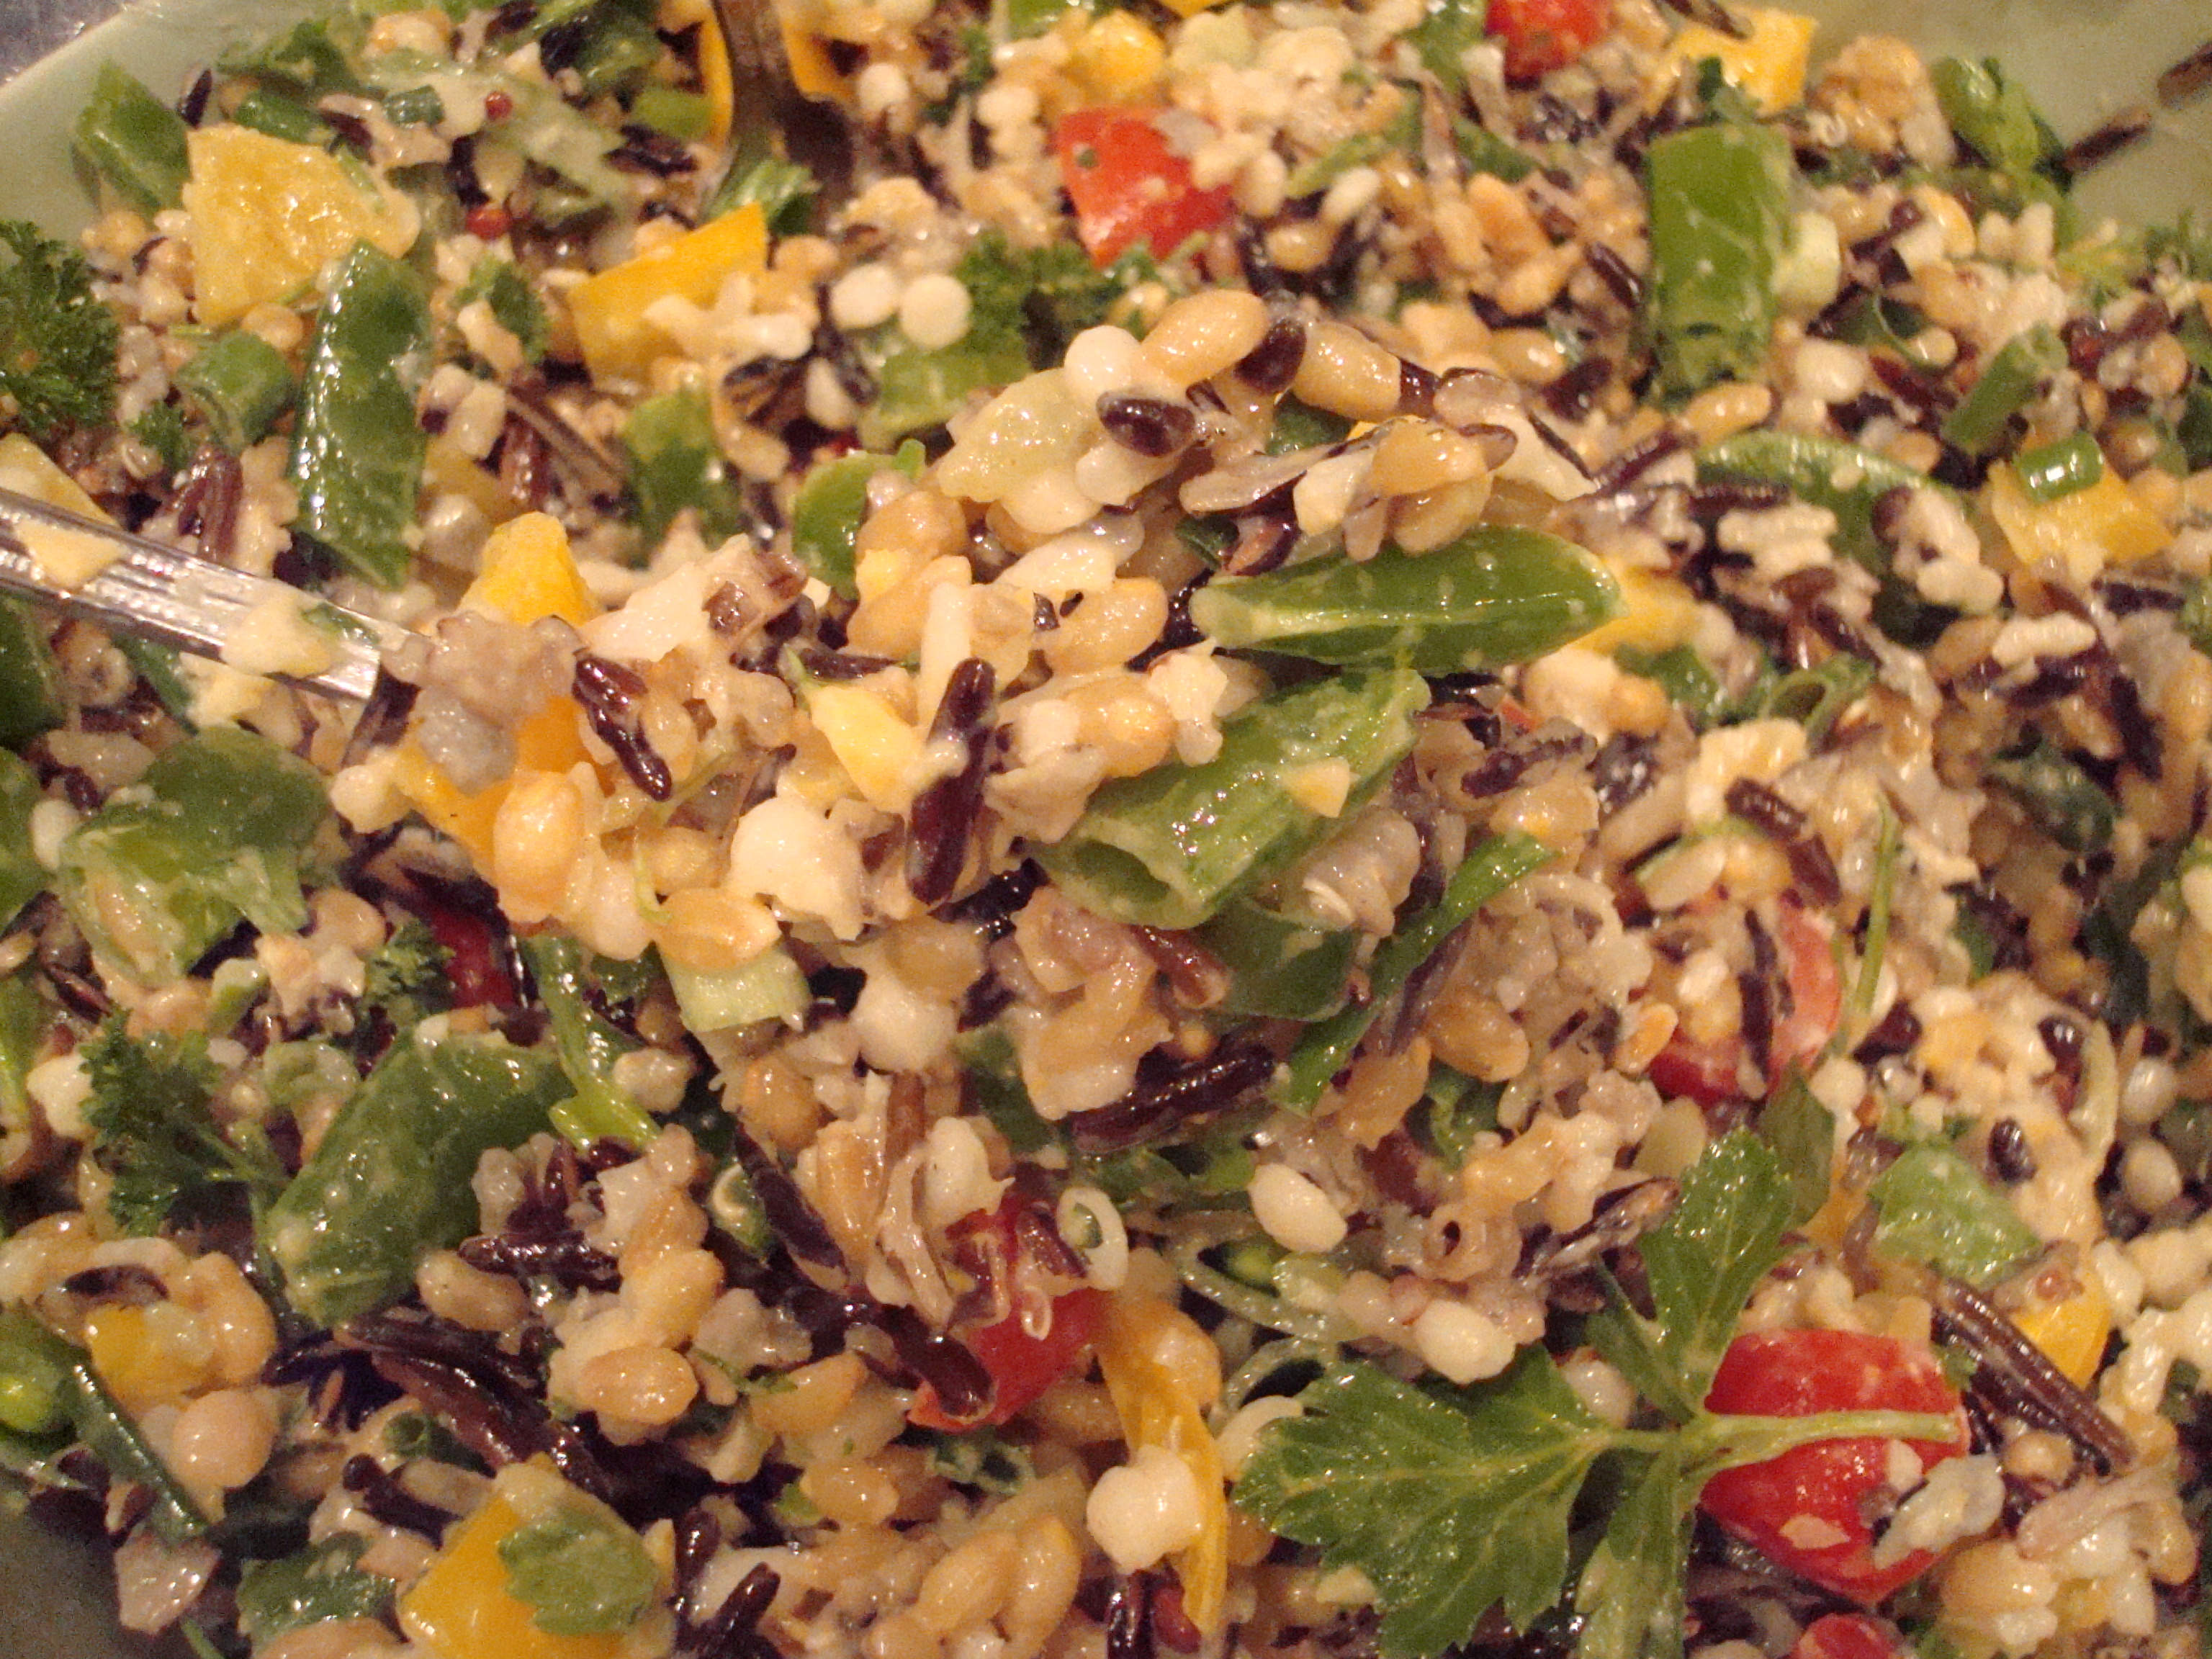 Three Grain Salad Primavera with Lemon Vinaigrette